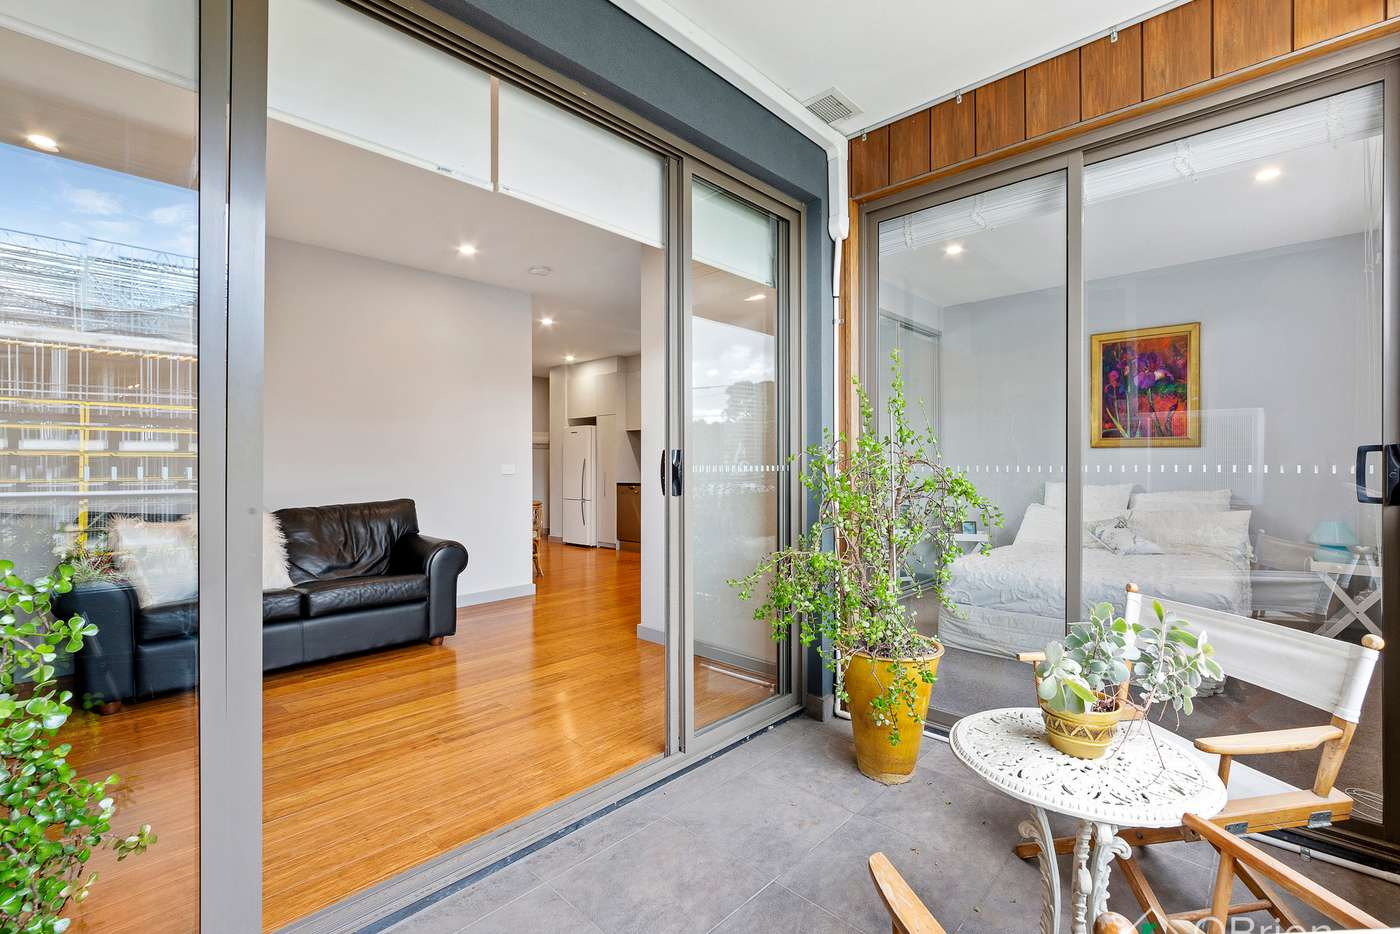 Main view of Homely apartment listing, 1/11 Railway Crescent, Hampton VIC 3188